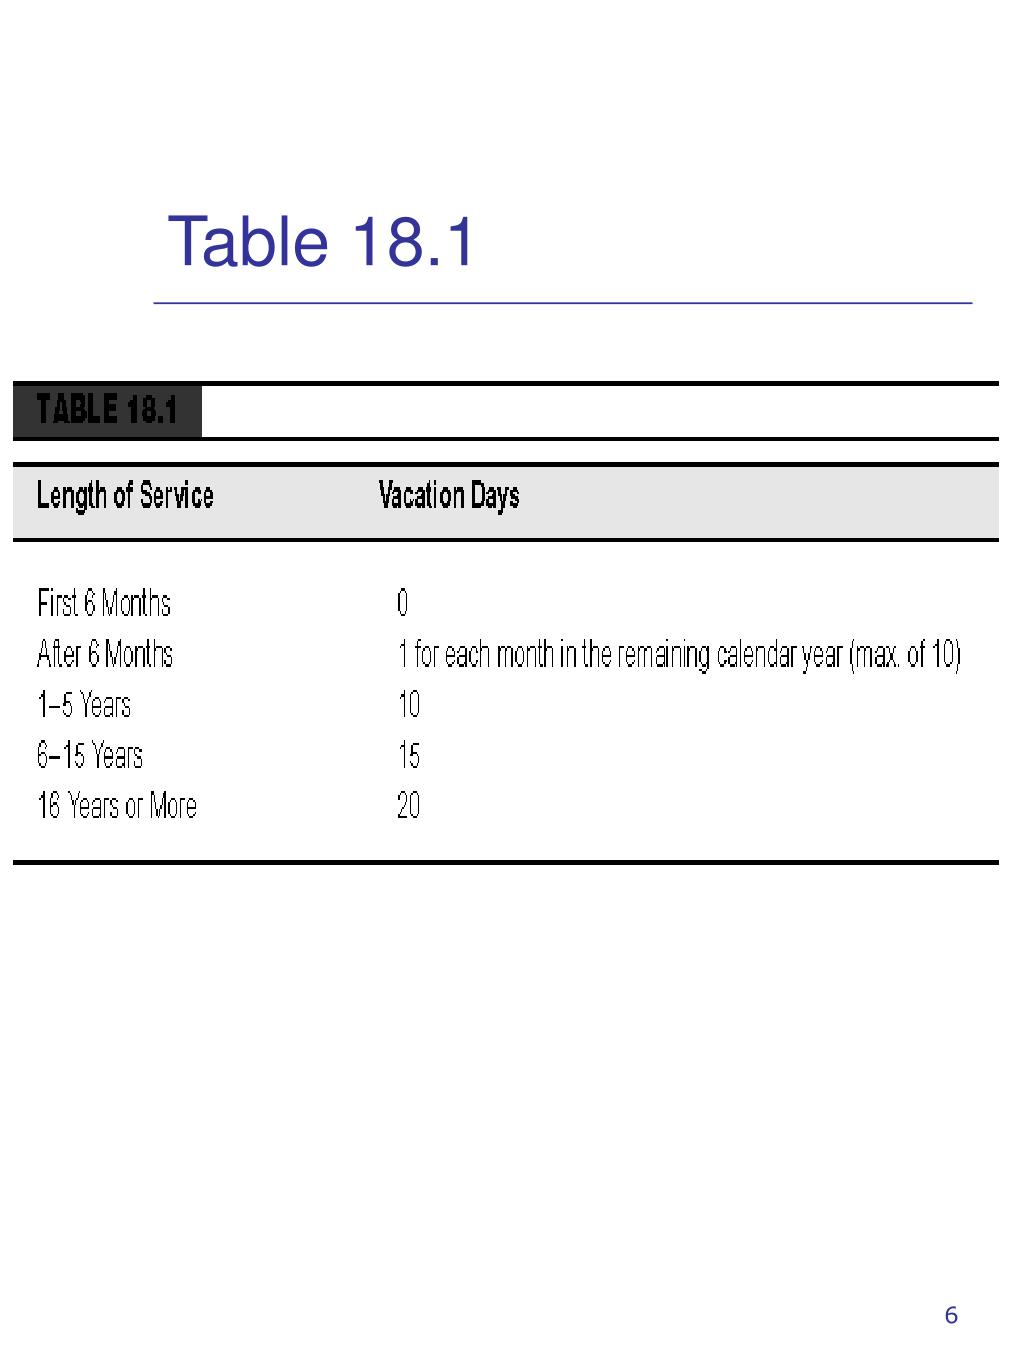 Table 18.1